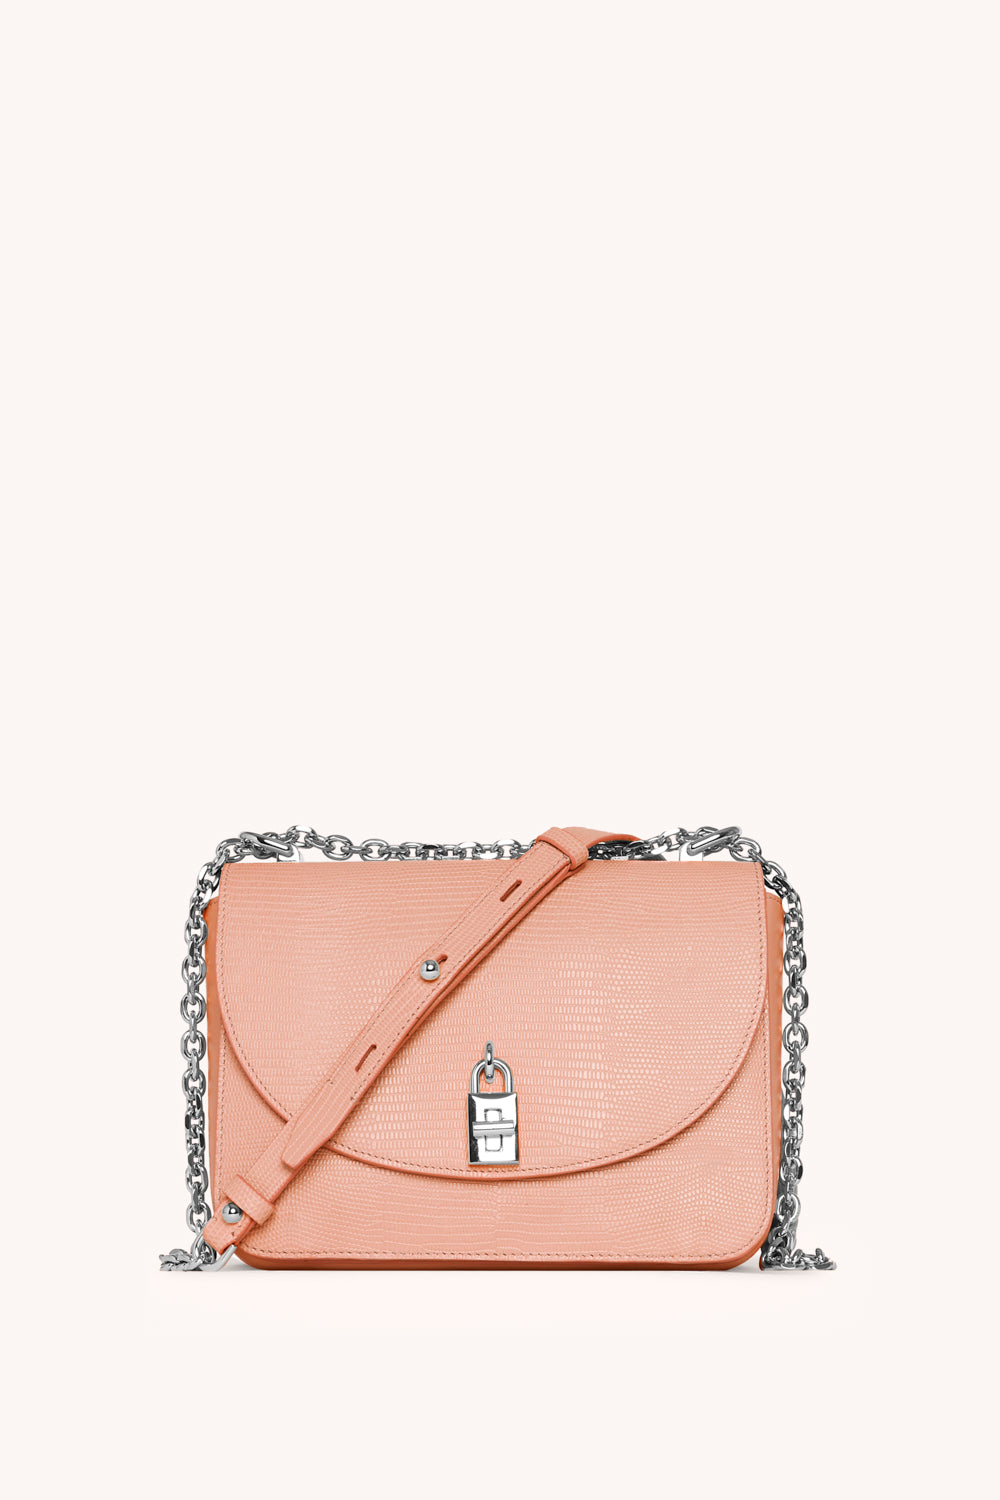 Rebecca-Minkoff Love Too Crossbody